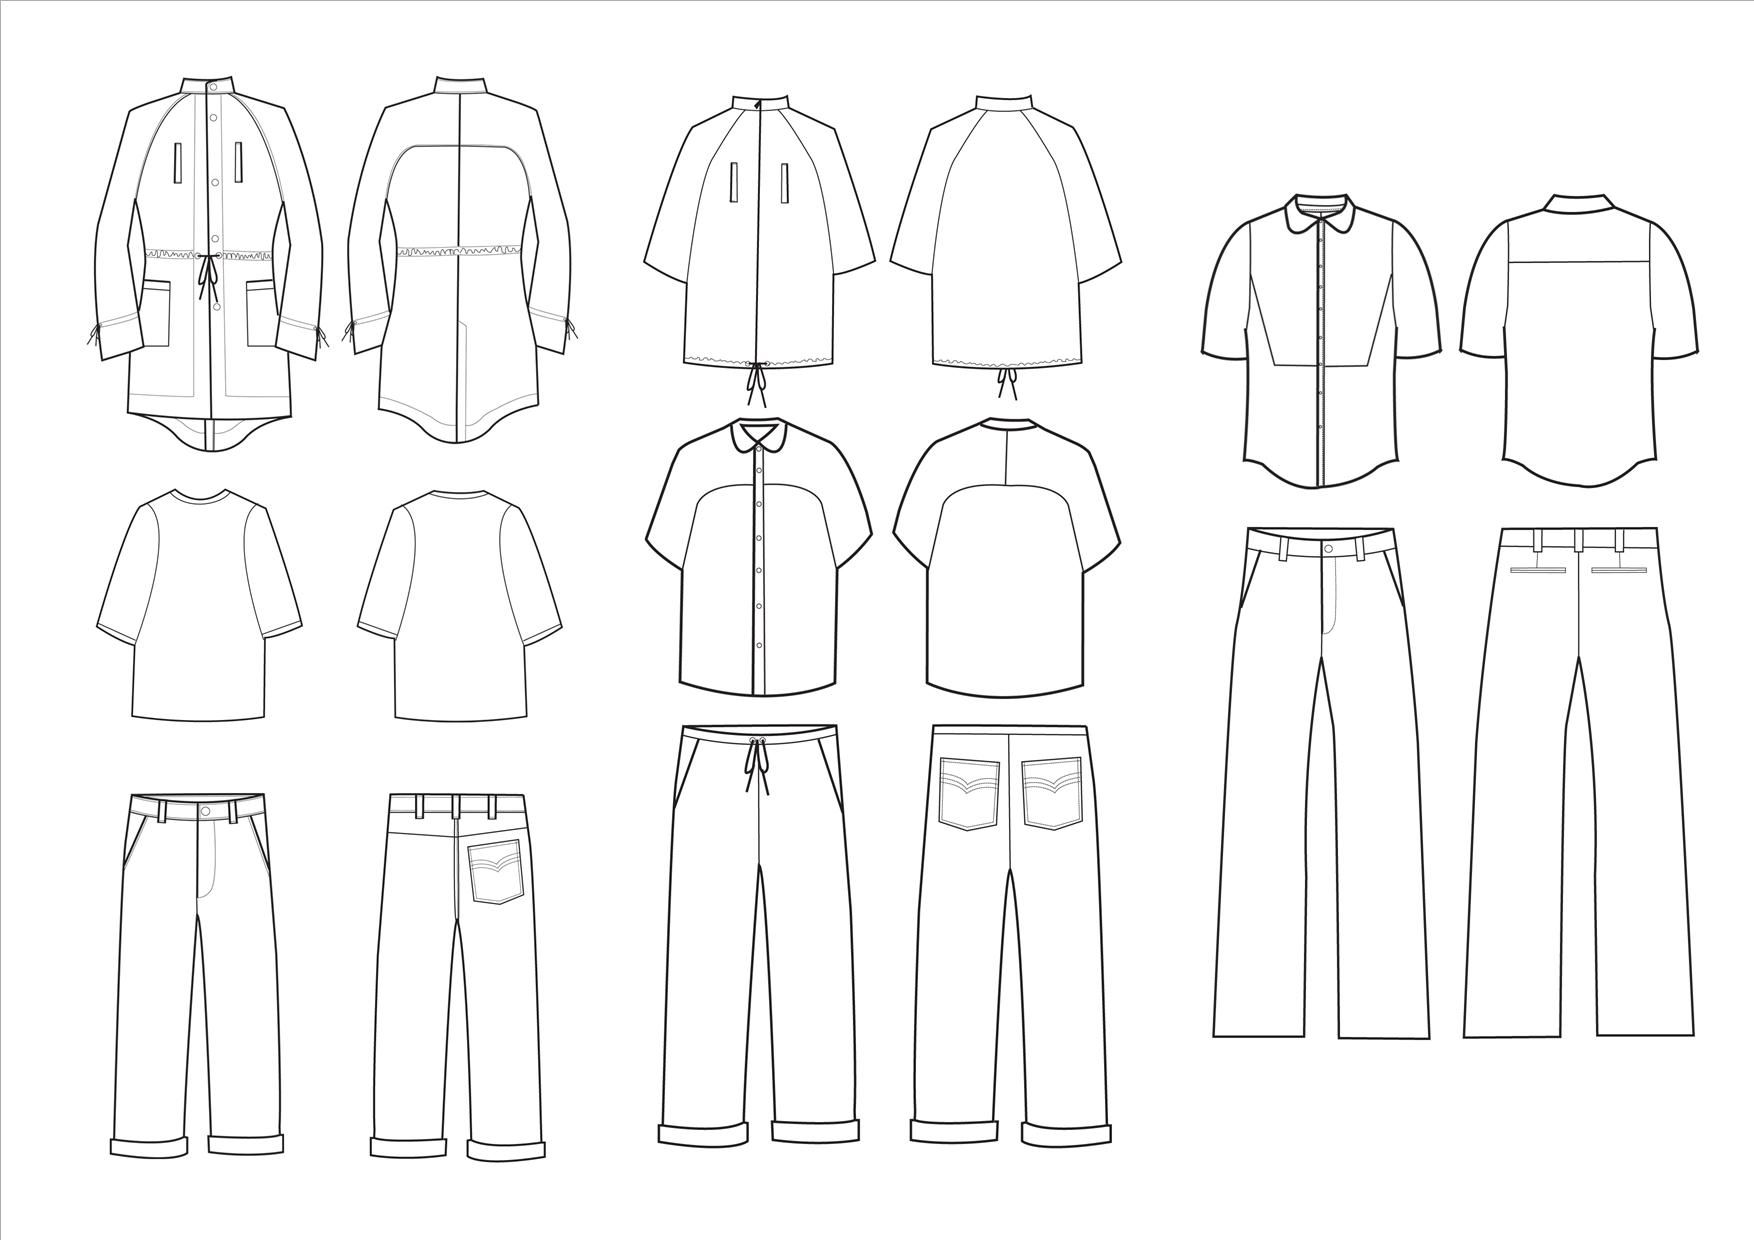 I can create 2 Complex or Detailed Fashion Design